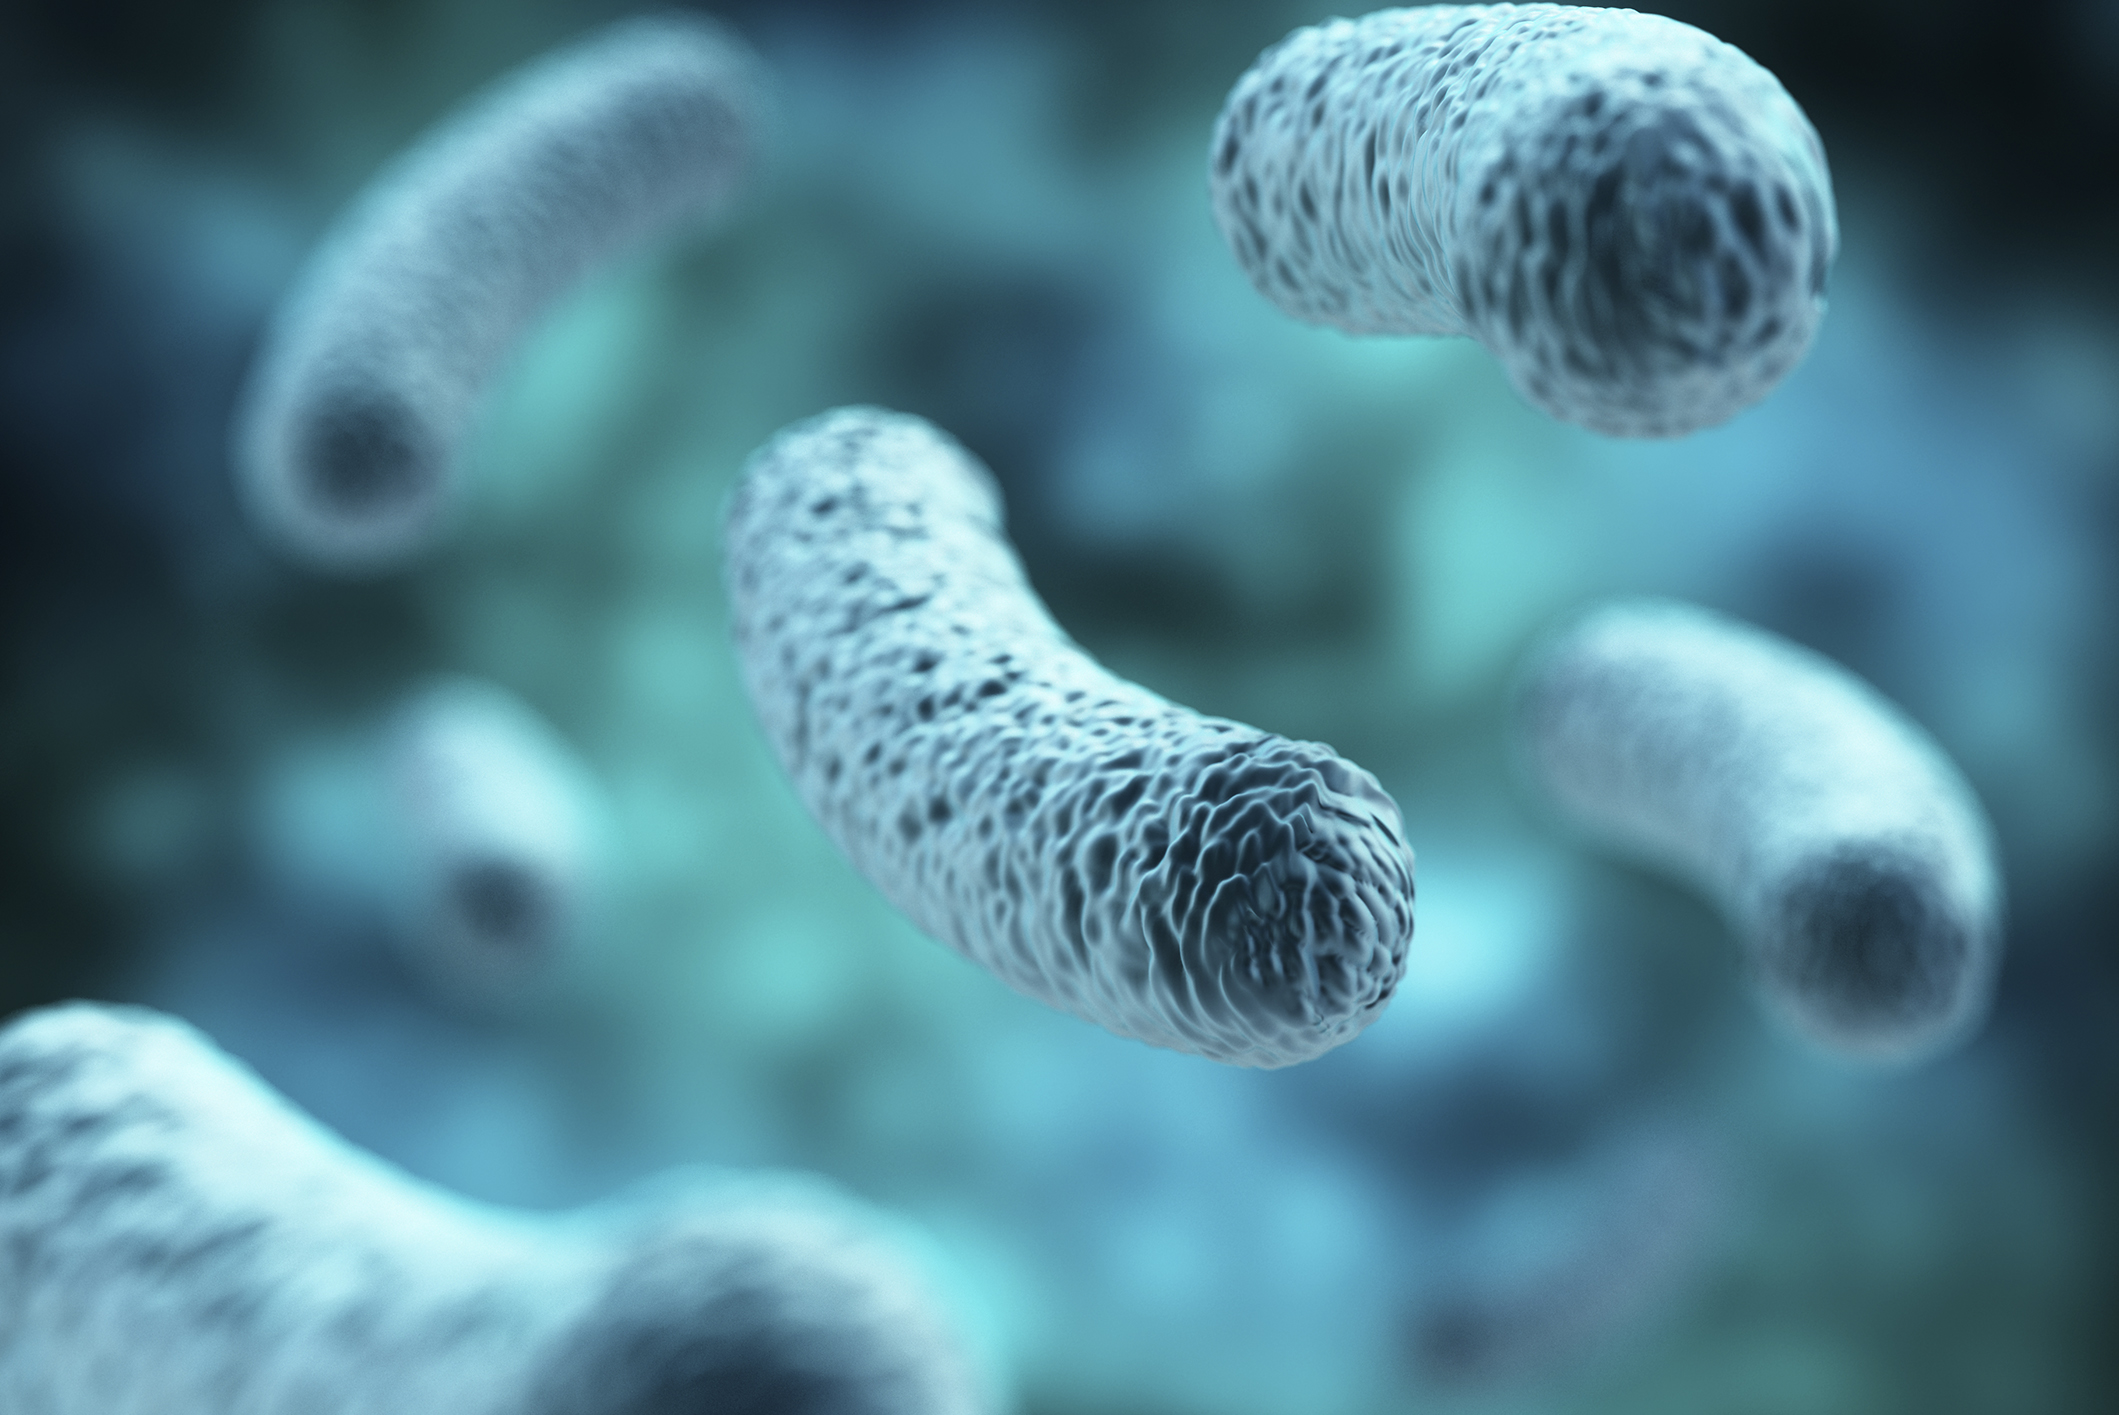 Graceland Legionnaires' Disease Outbreak Case Count Grows to 9